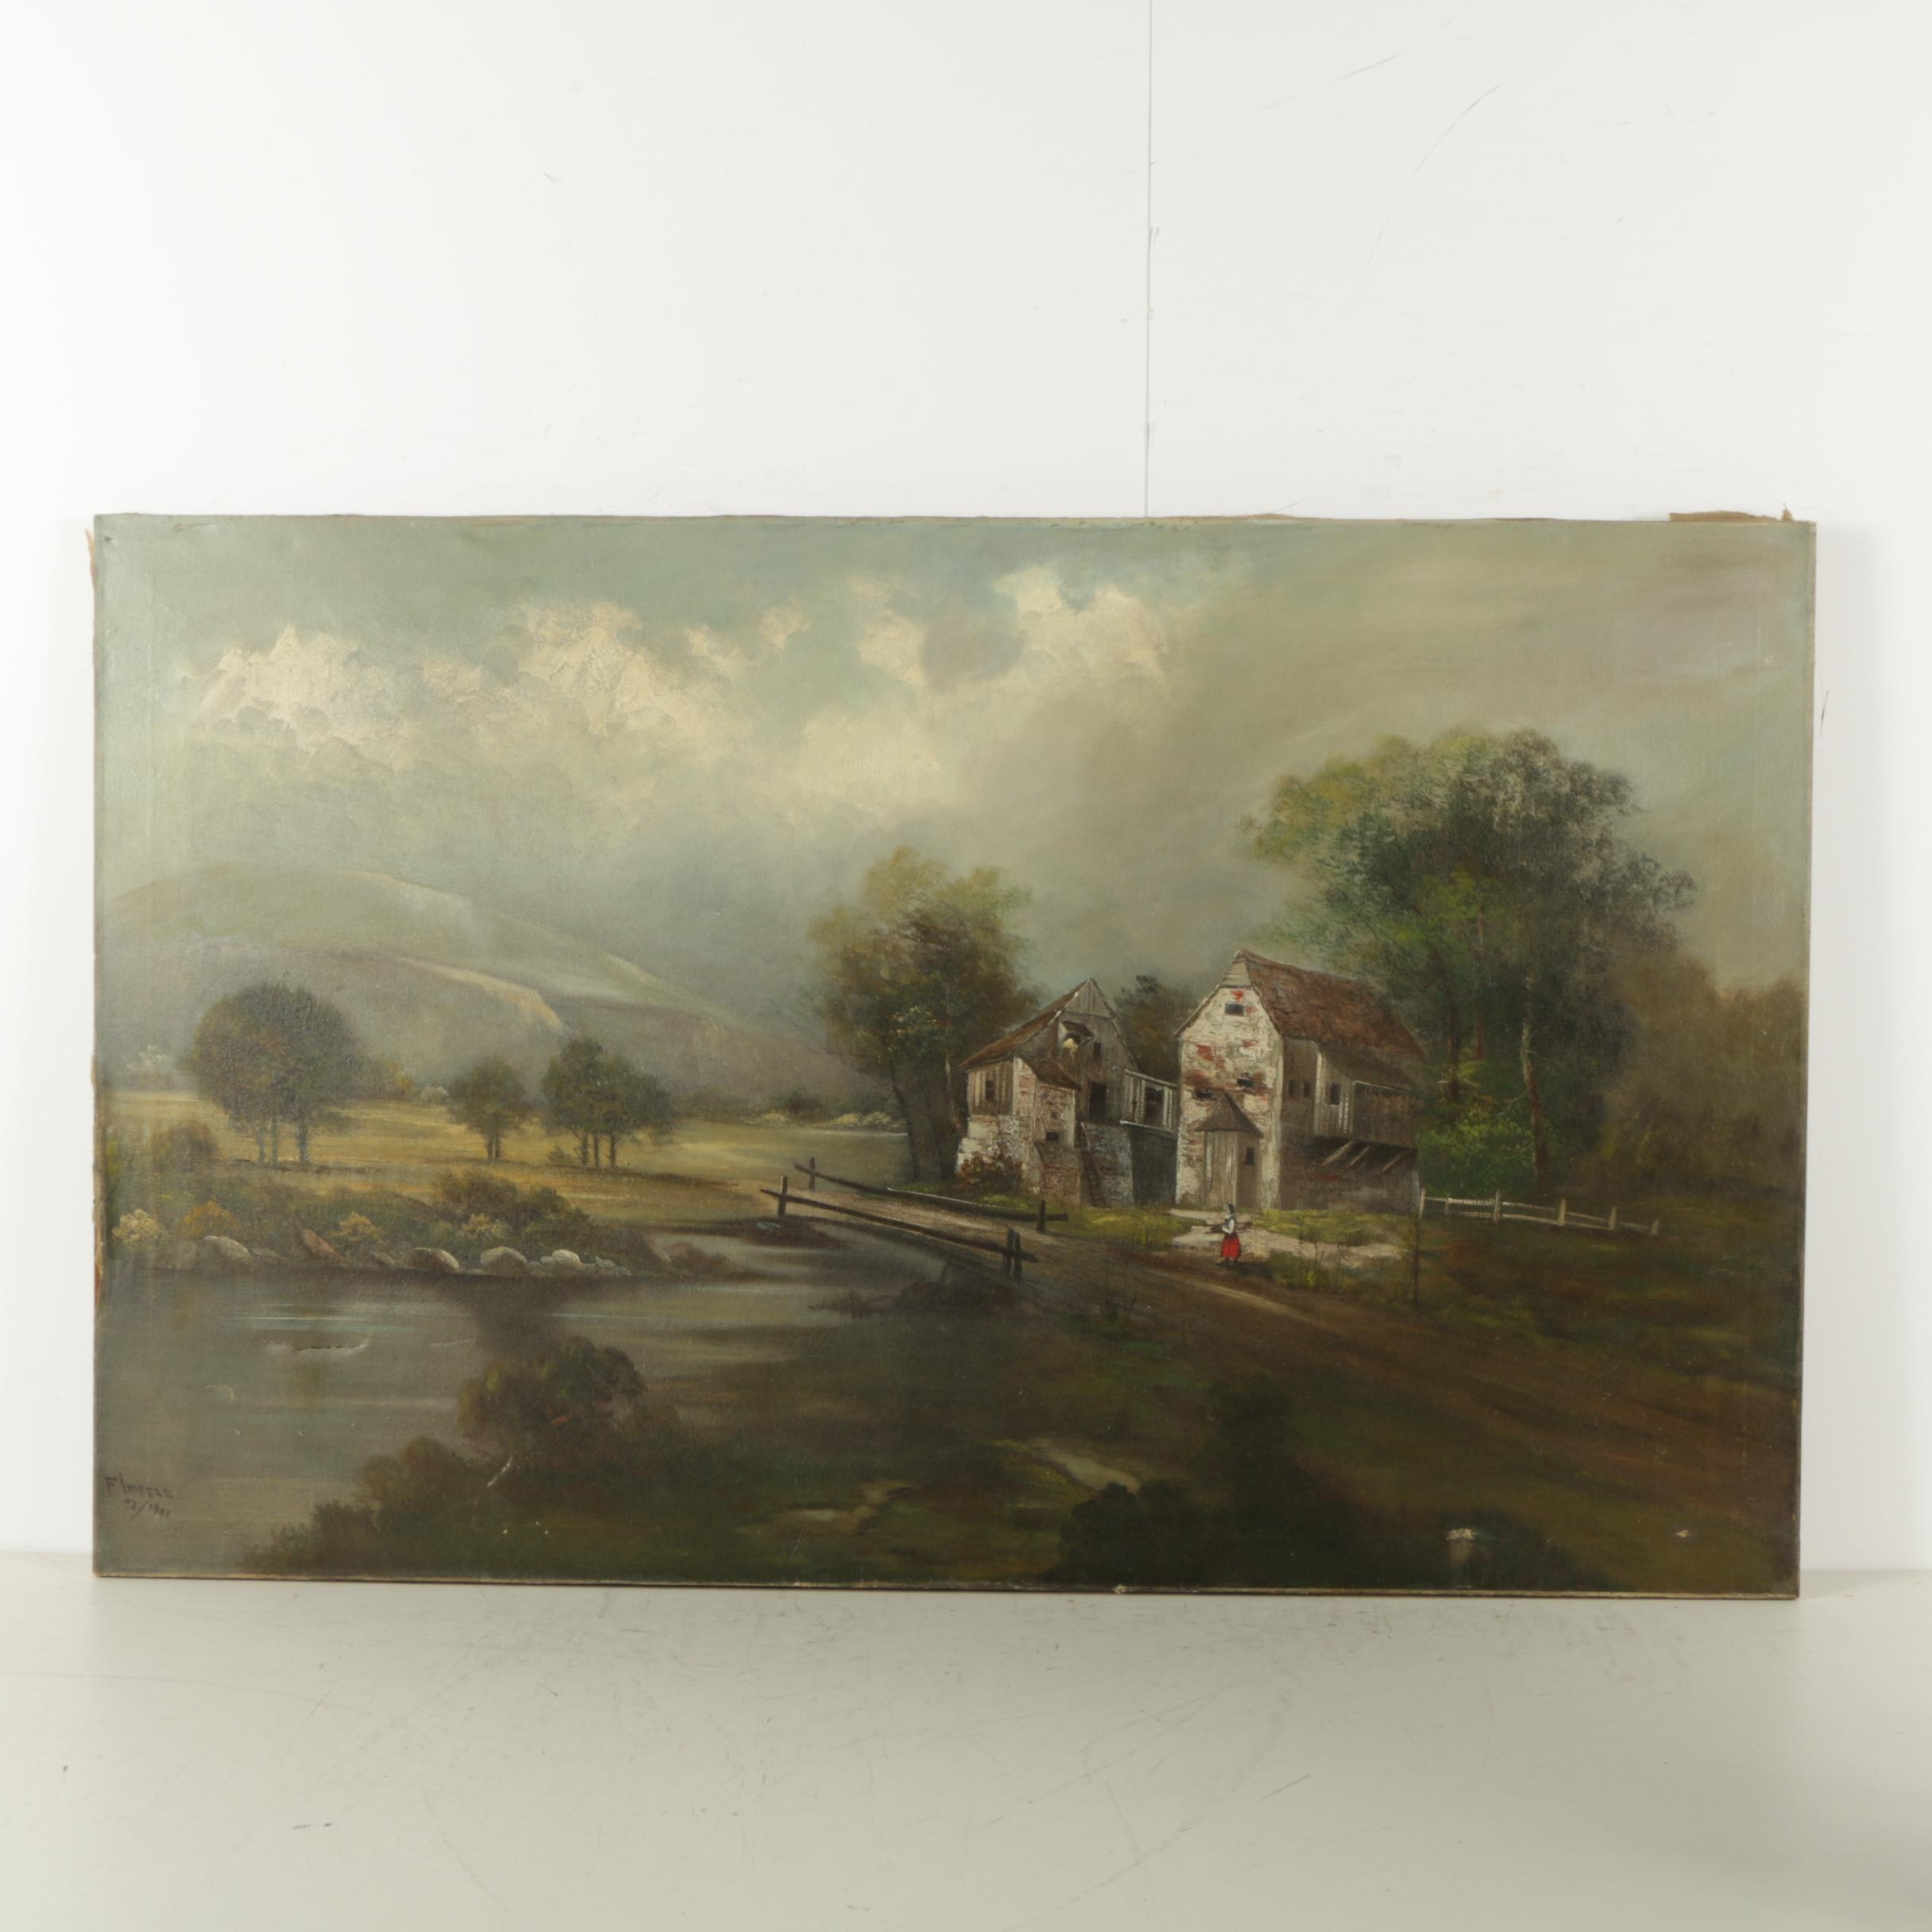 Fimfeld Antique Oil Painting on Canvas of a Pastoral Scene